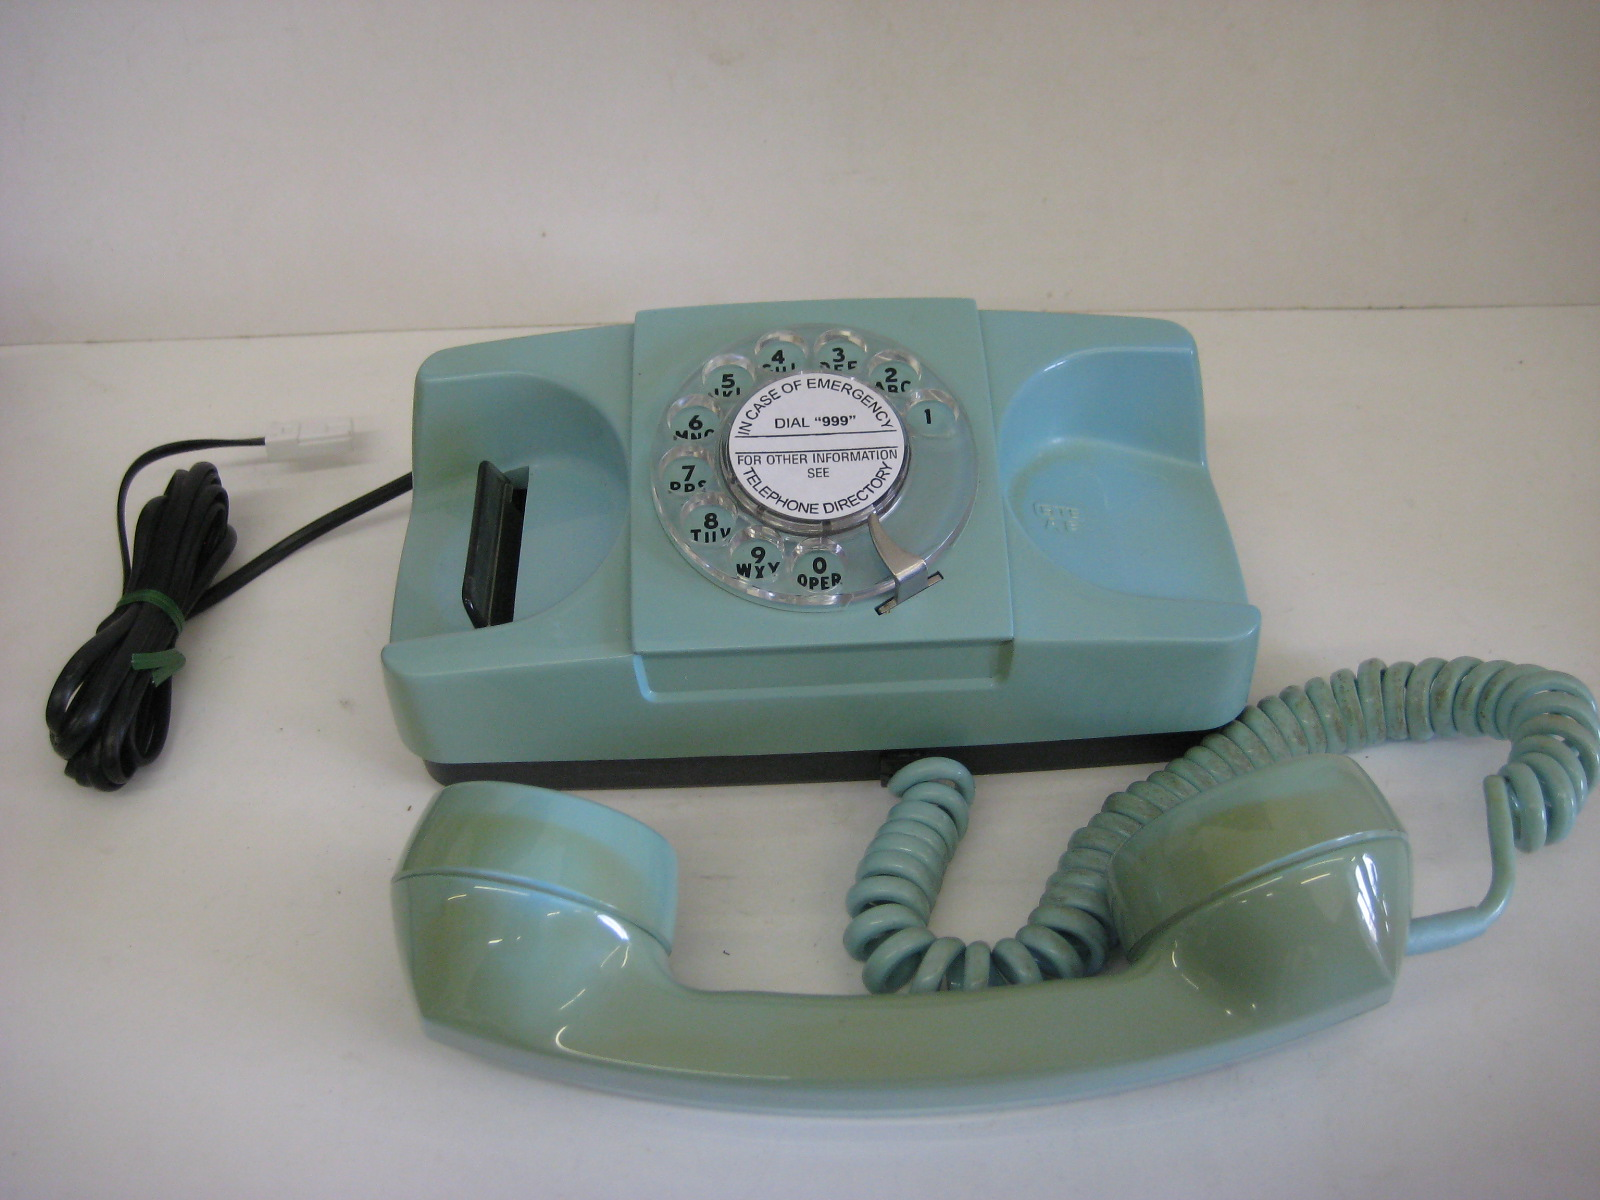 Star light rotary dial telephone